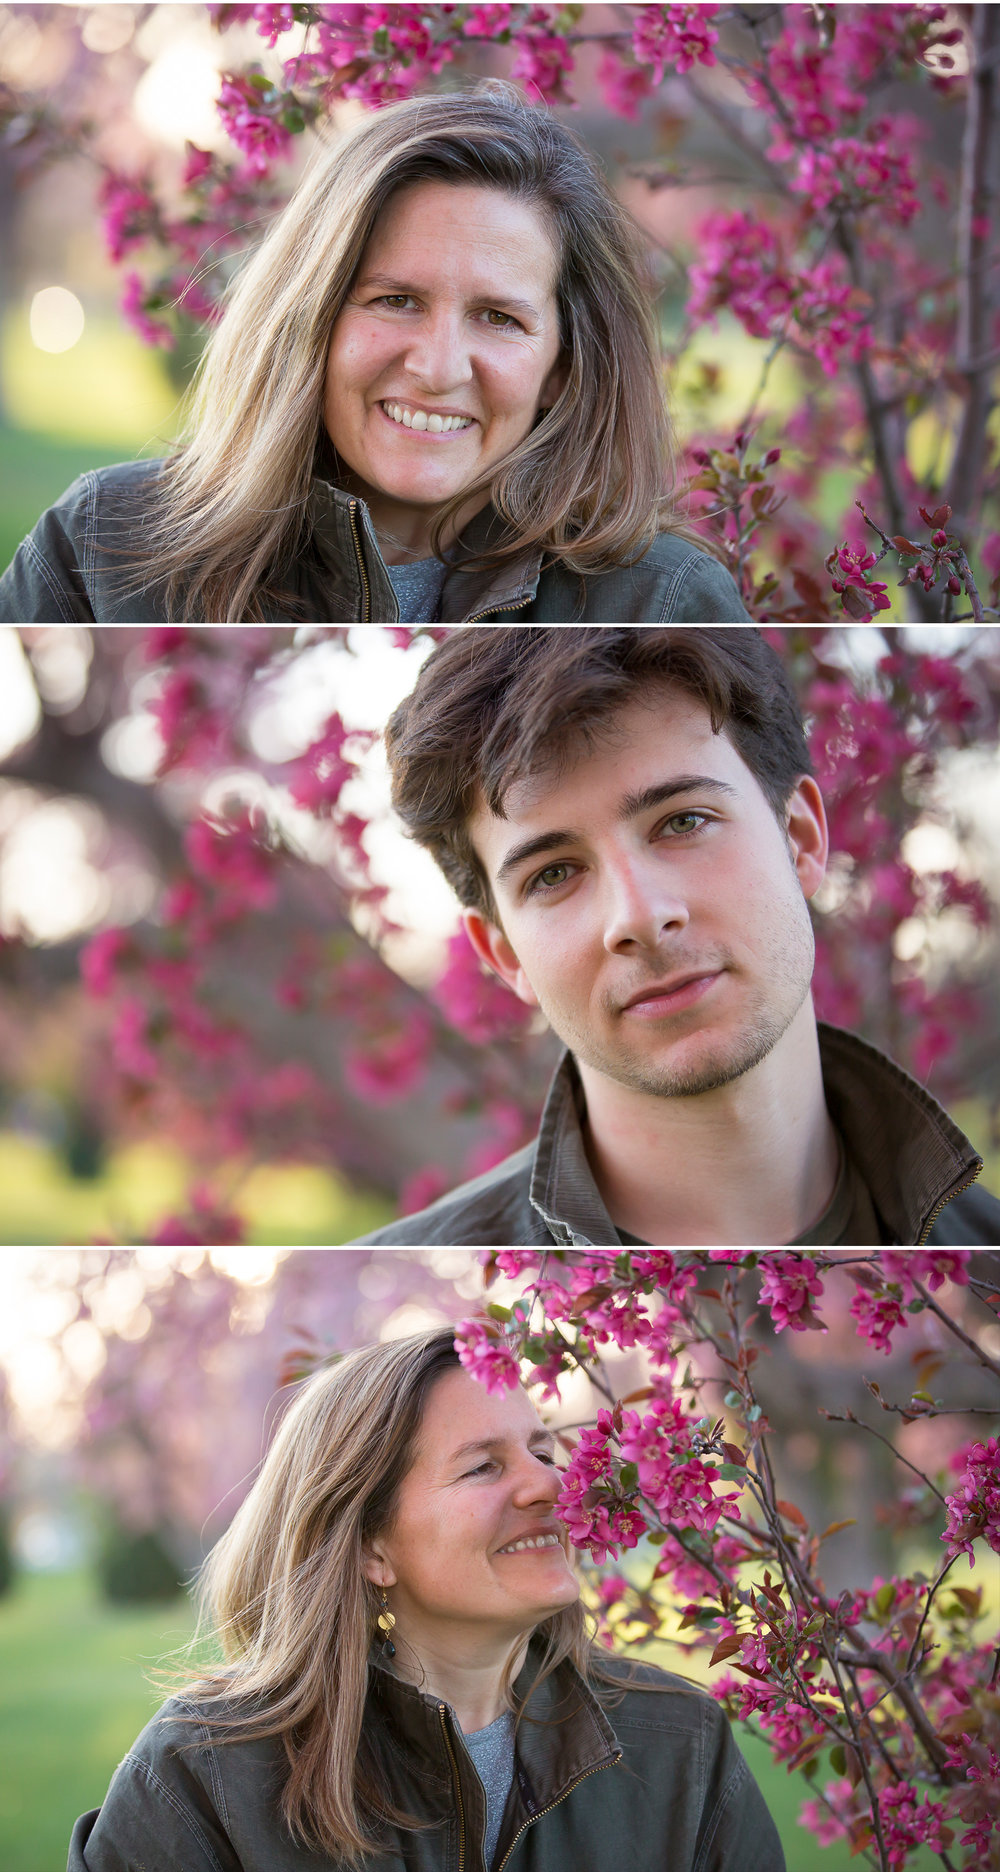 09-denver-portraits-blossoms-Merritt-Studio.jpg